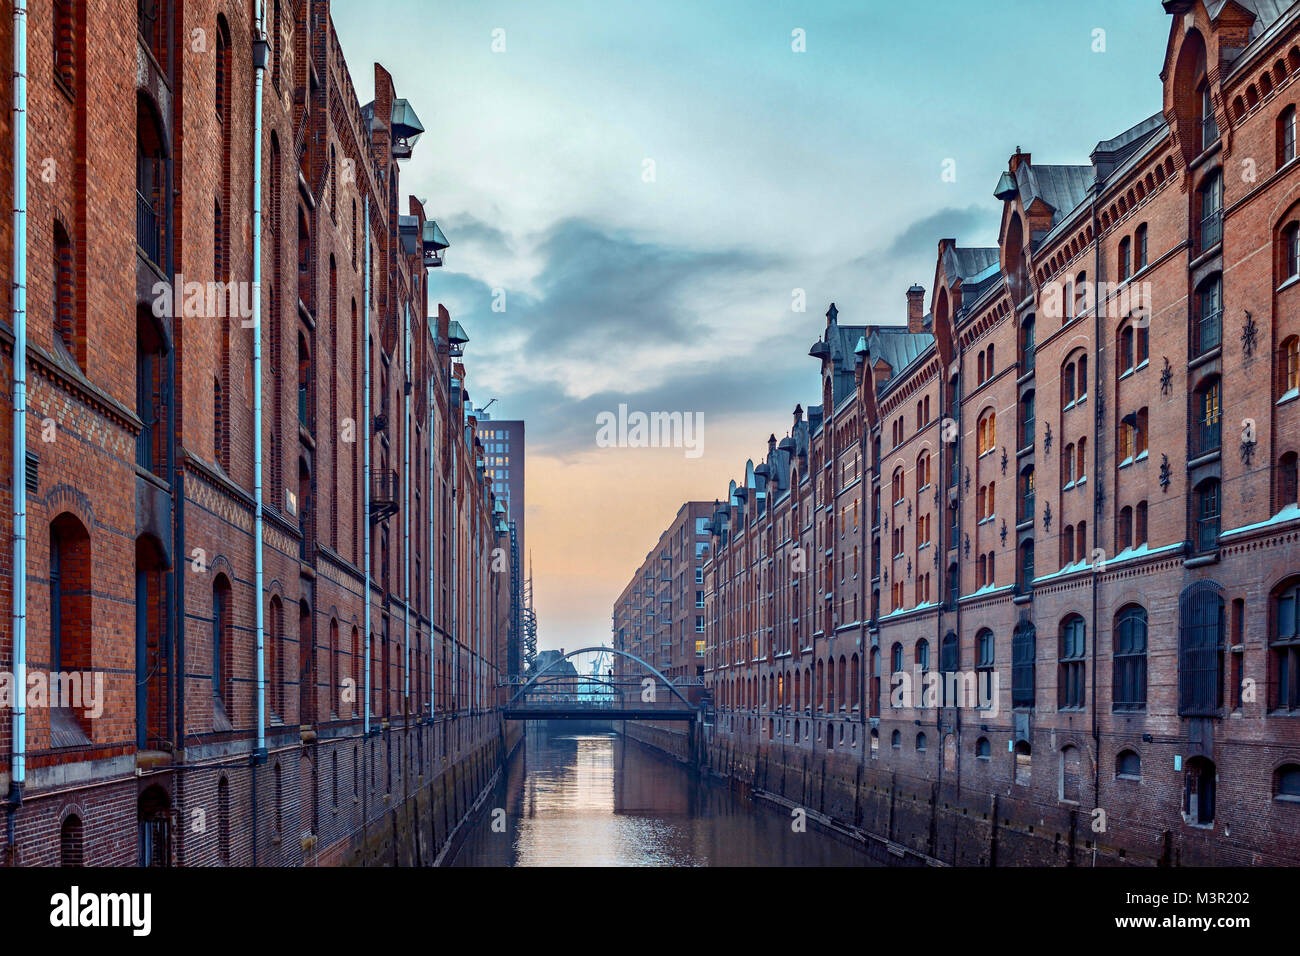 Old Speicherstadt or warehouses in Hamburg, Germany - Stock Image